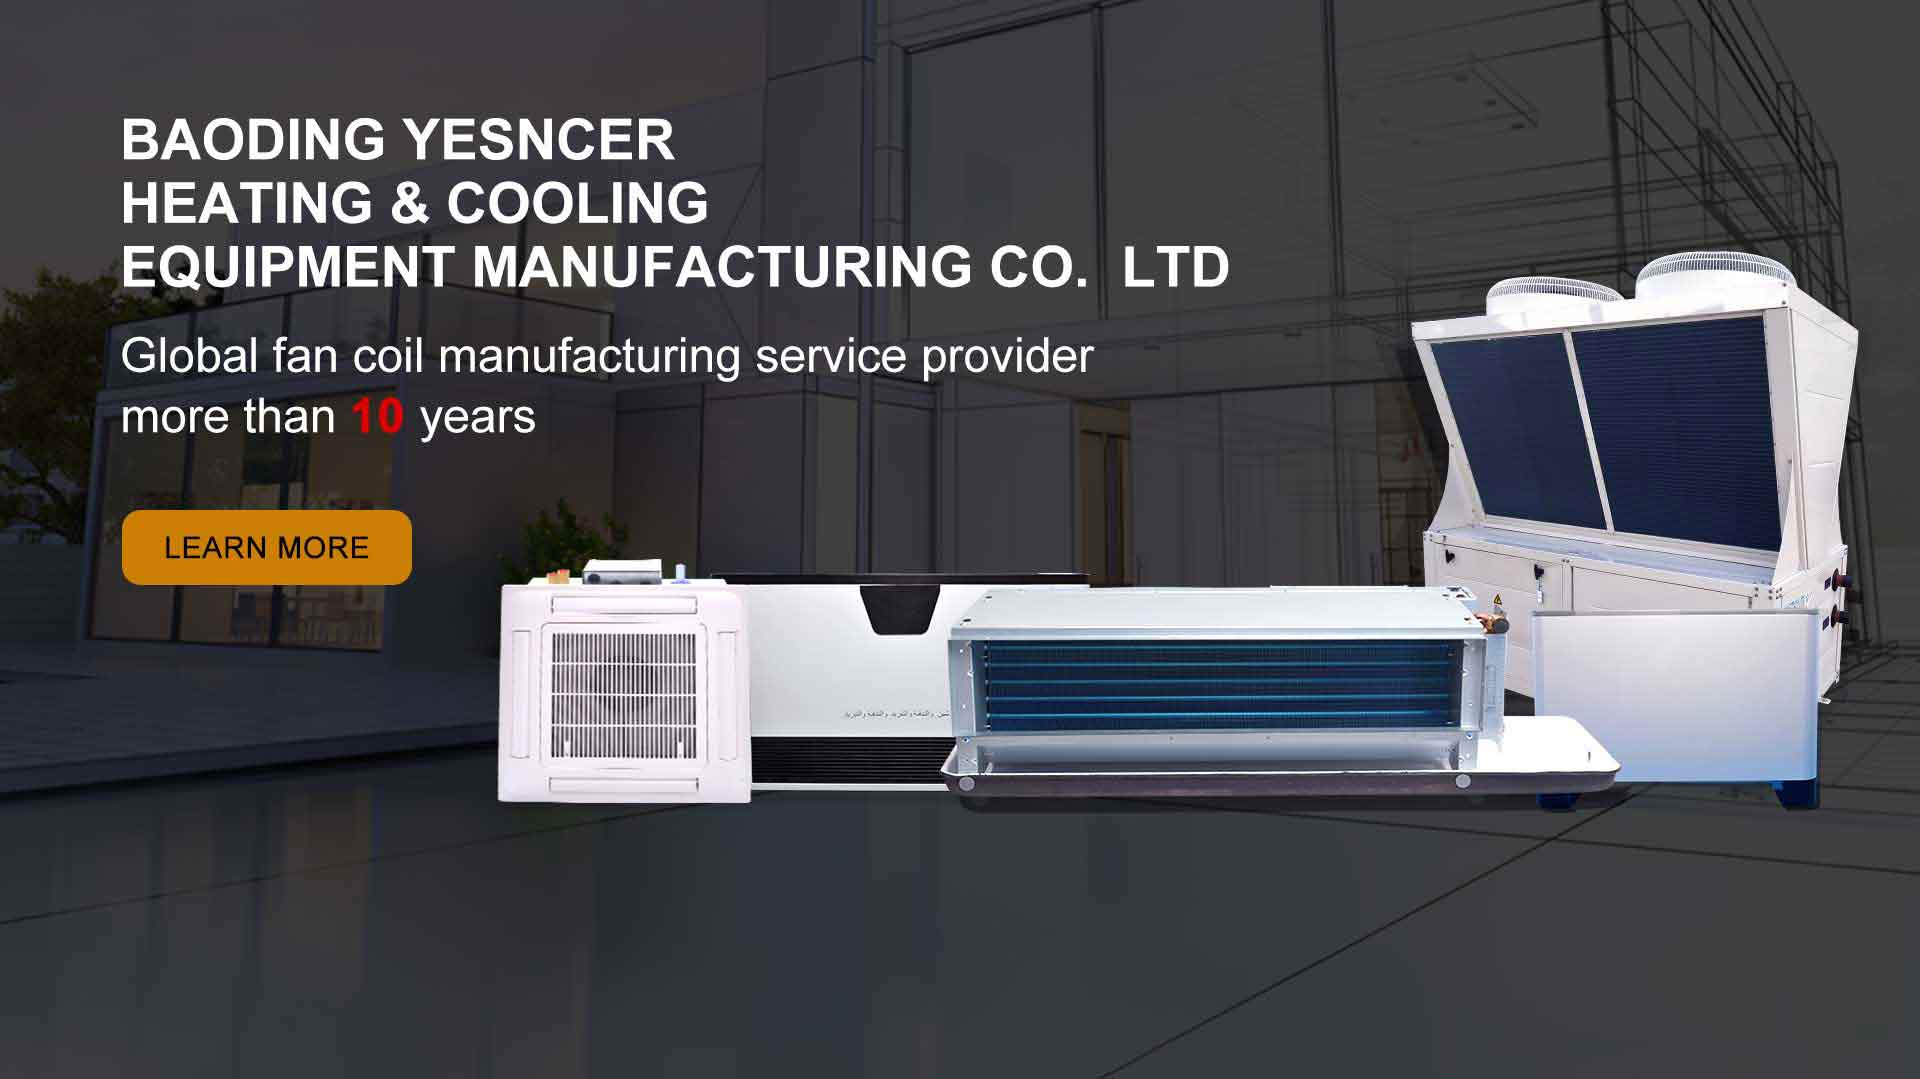 Baoding Yesncer Heating & Cooling Equipment Manufacturing Co., Ltd